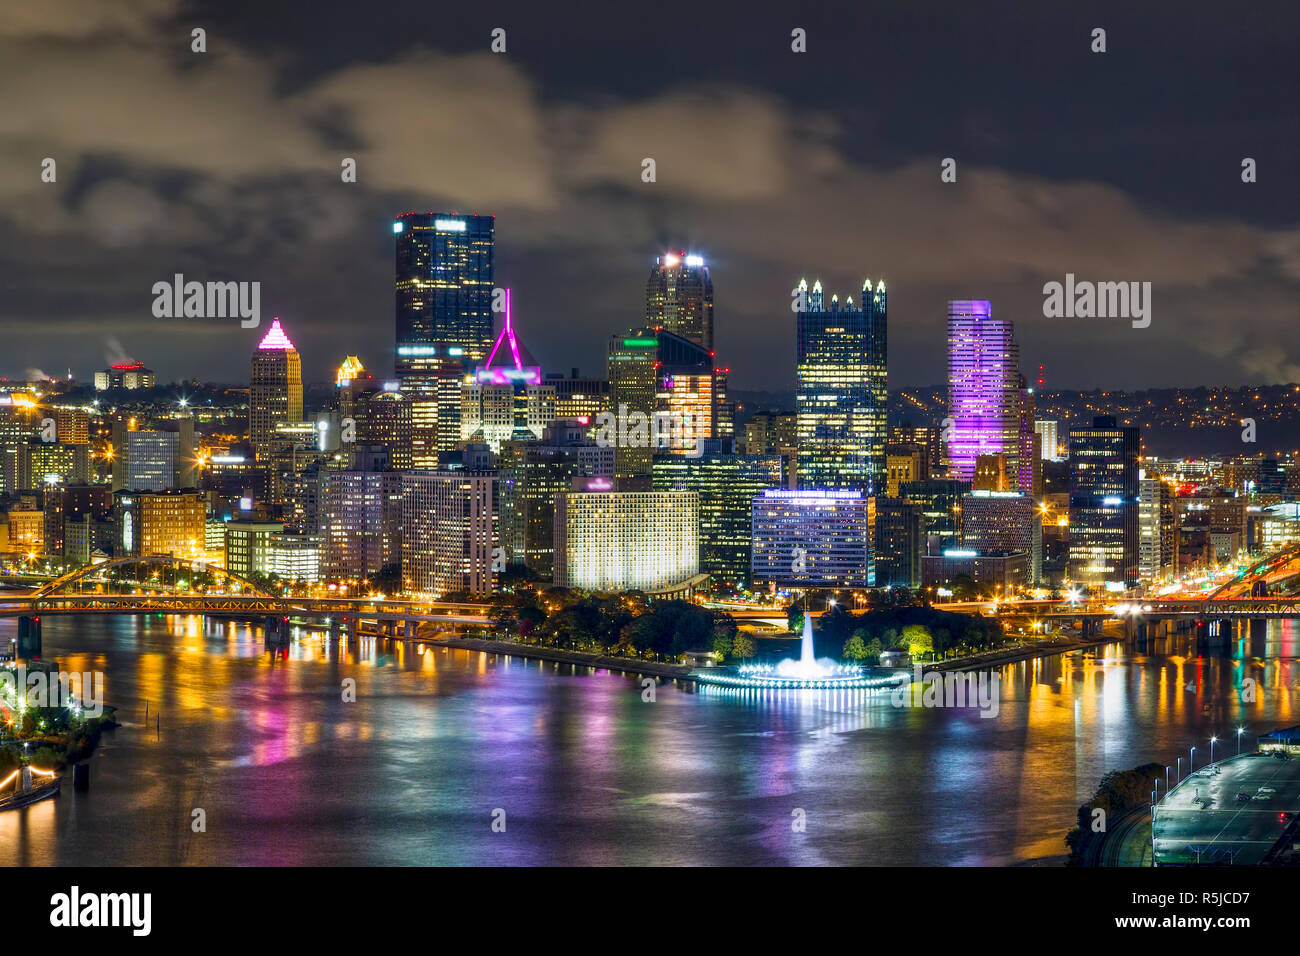 The city of Pittsburgh, Pennsylvania shines at night where the Allegheny and Monongahela Rivers meet to form the mighty Ohio. Stock Photo